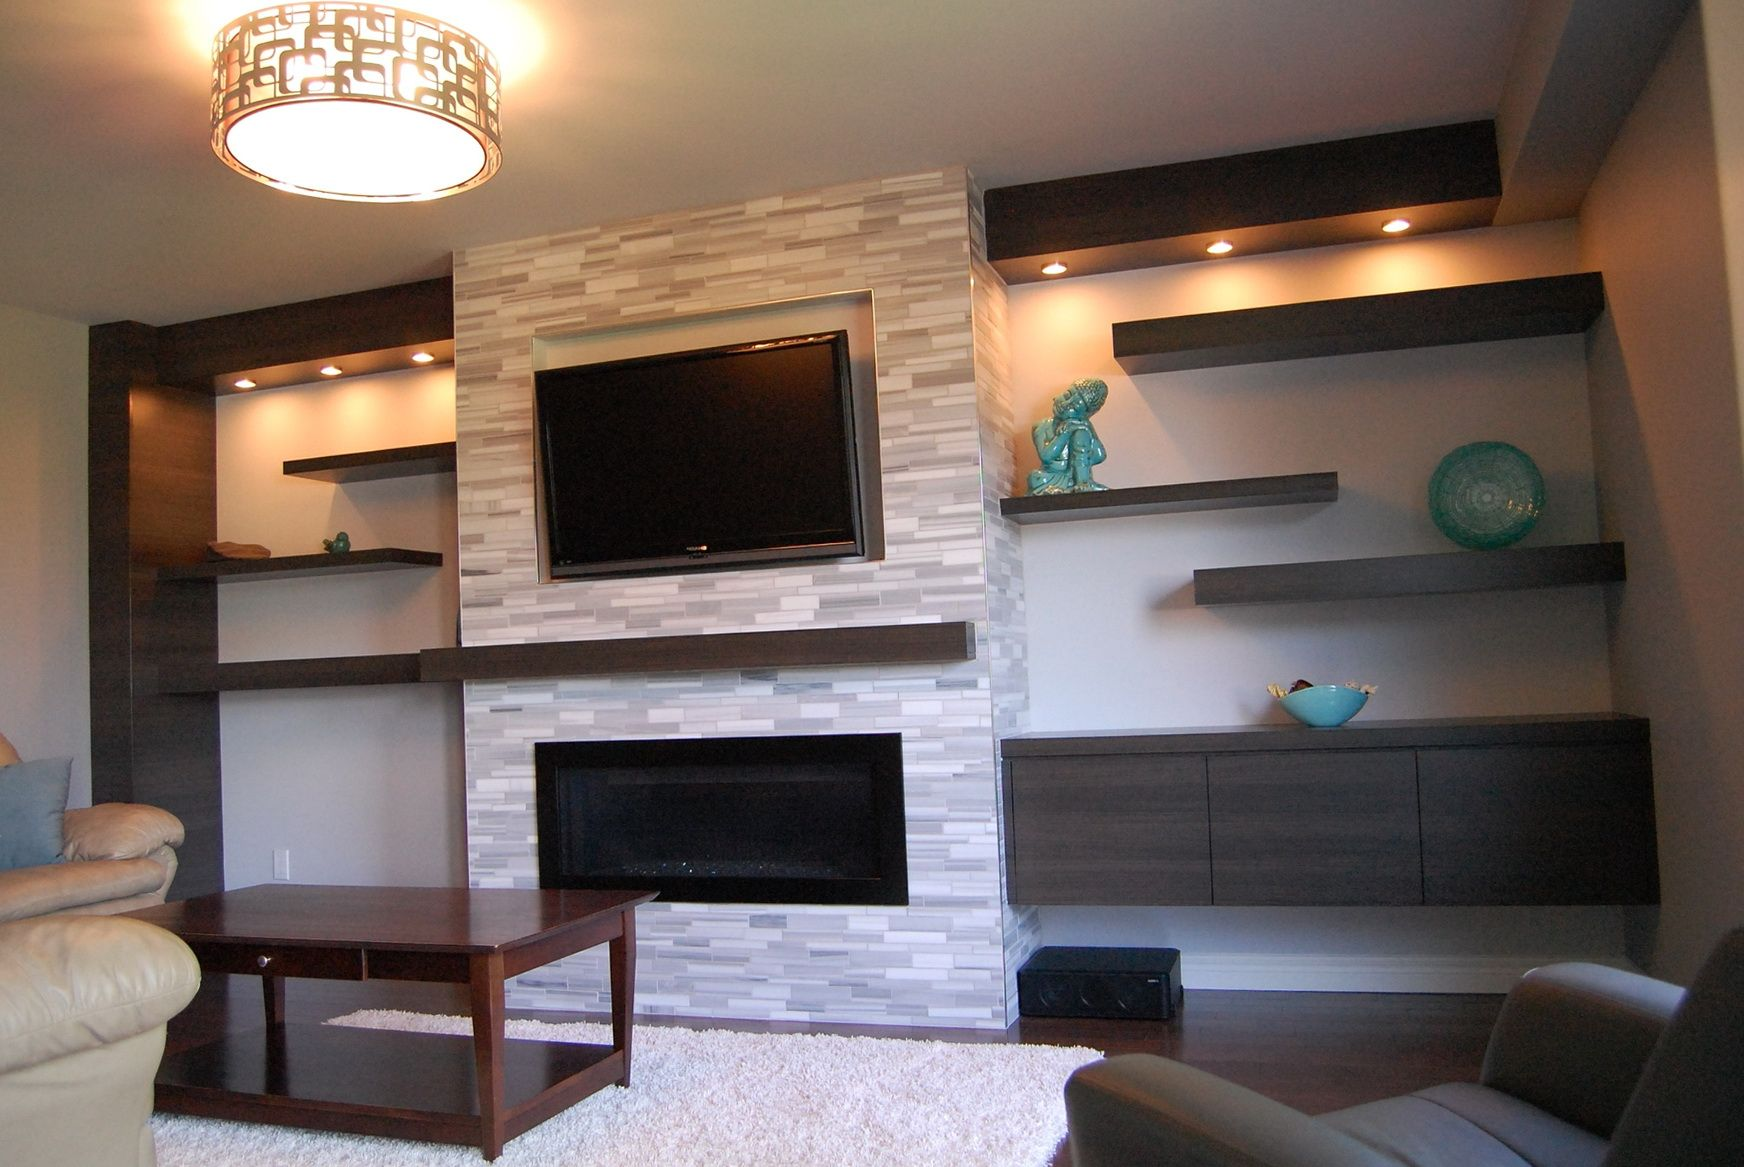 Wall mounted fireplace and floating cabinet and shelves Have the